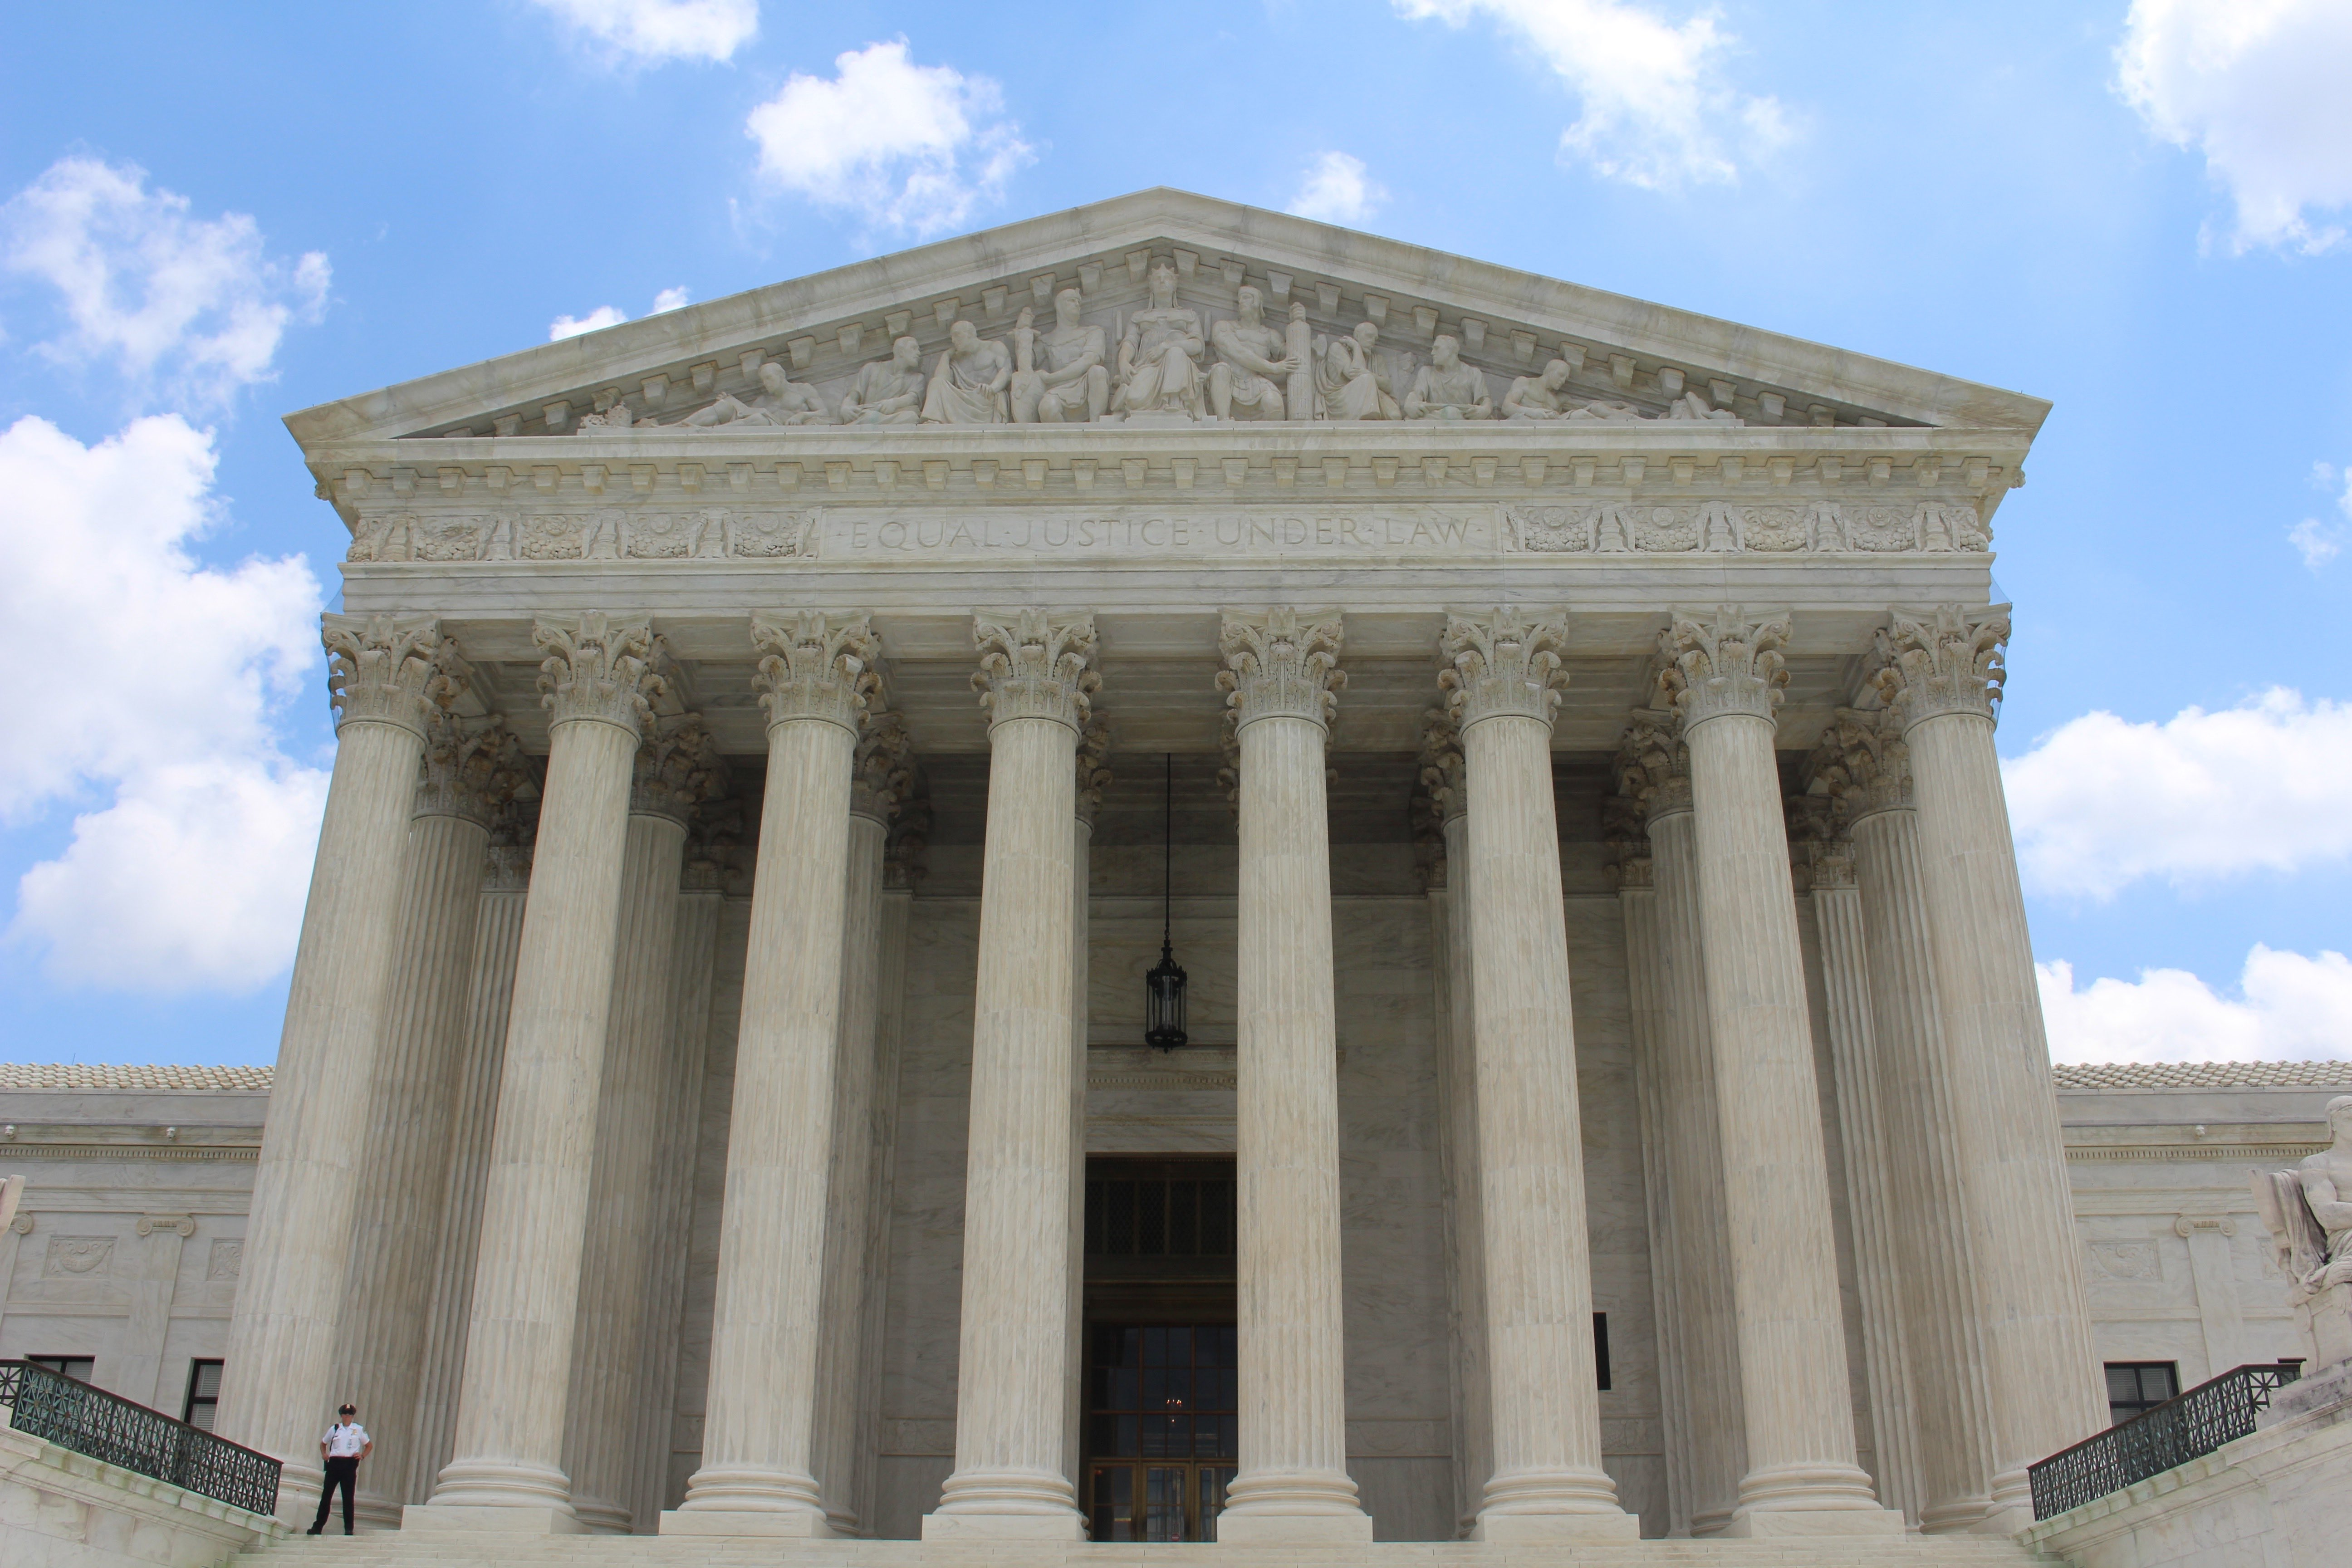 The front of the U S Supreme Court.